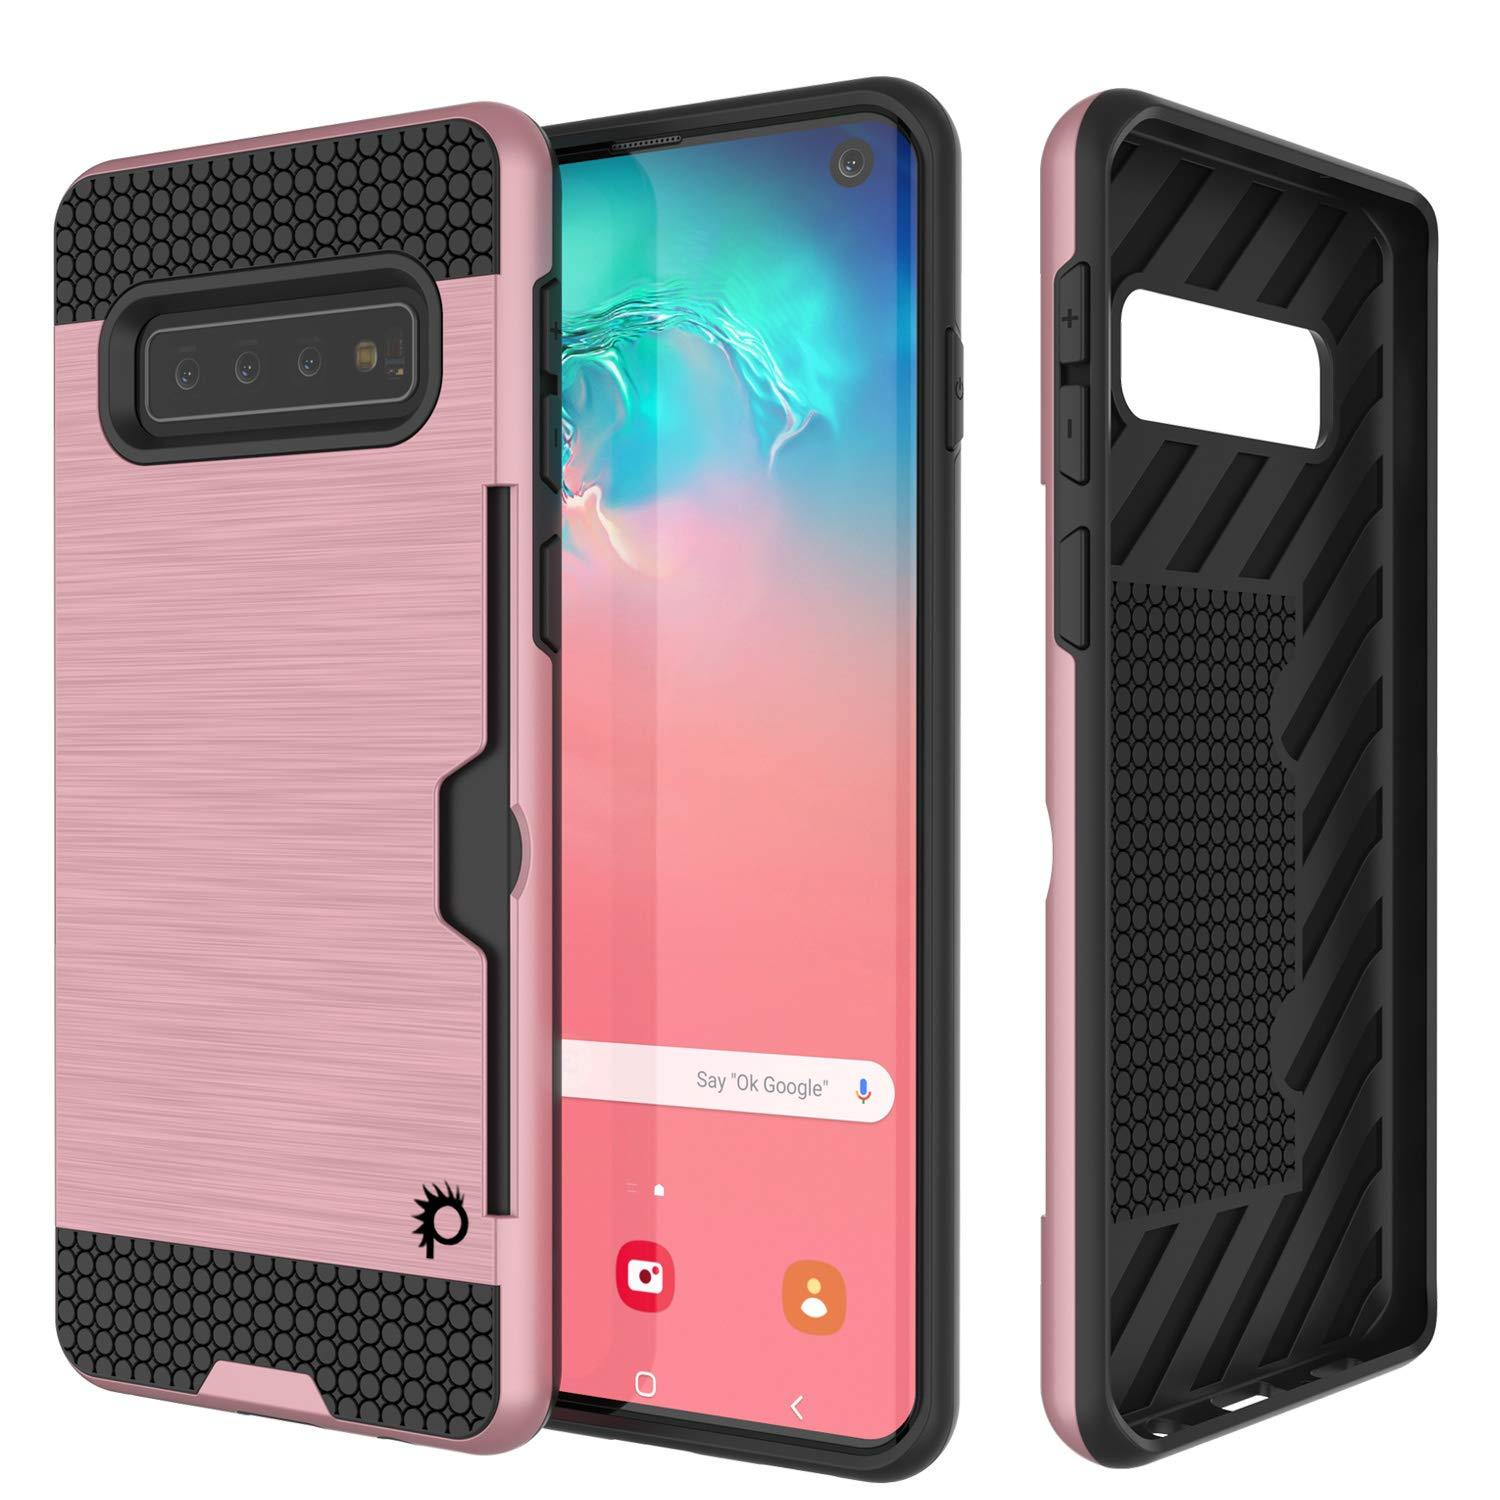 Galaxy S10e Case, PUNKcase [SLOT Series] [Slim Fit] Dual-Layer Armor Cover w/Integrated Anti-Shock System, Credit Card Slot [Rose Gold]